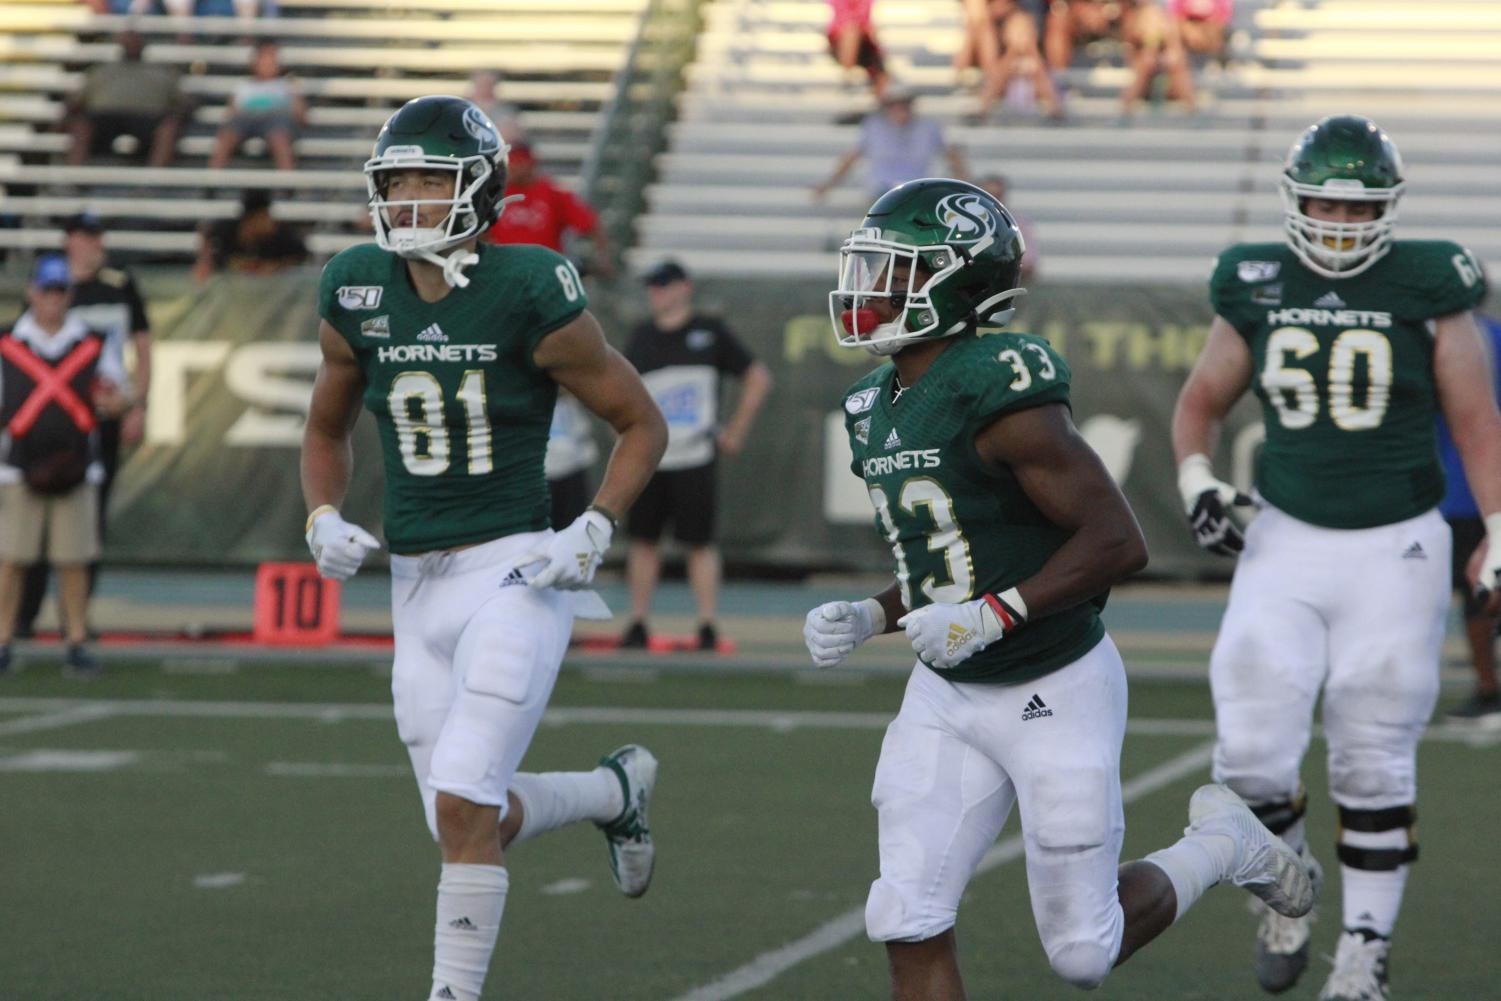 Sac+State+junior+running+back+Elijah+Dotson+and+sophomore+wide+receiver+Tao+McClinton+jog+off+the+field+against+Southern+Oregon+on+Saturday%2C+August+31%2C+at+Hornet+Stadium.+Dotson+had+110+all-purpose+yards+and+three+touchdowns+total.